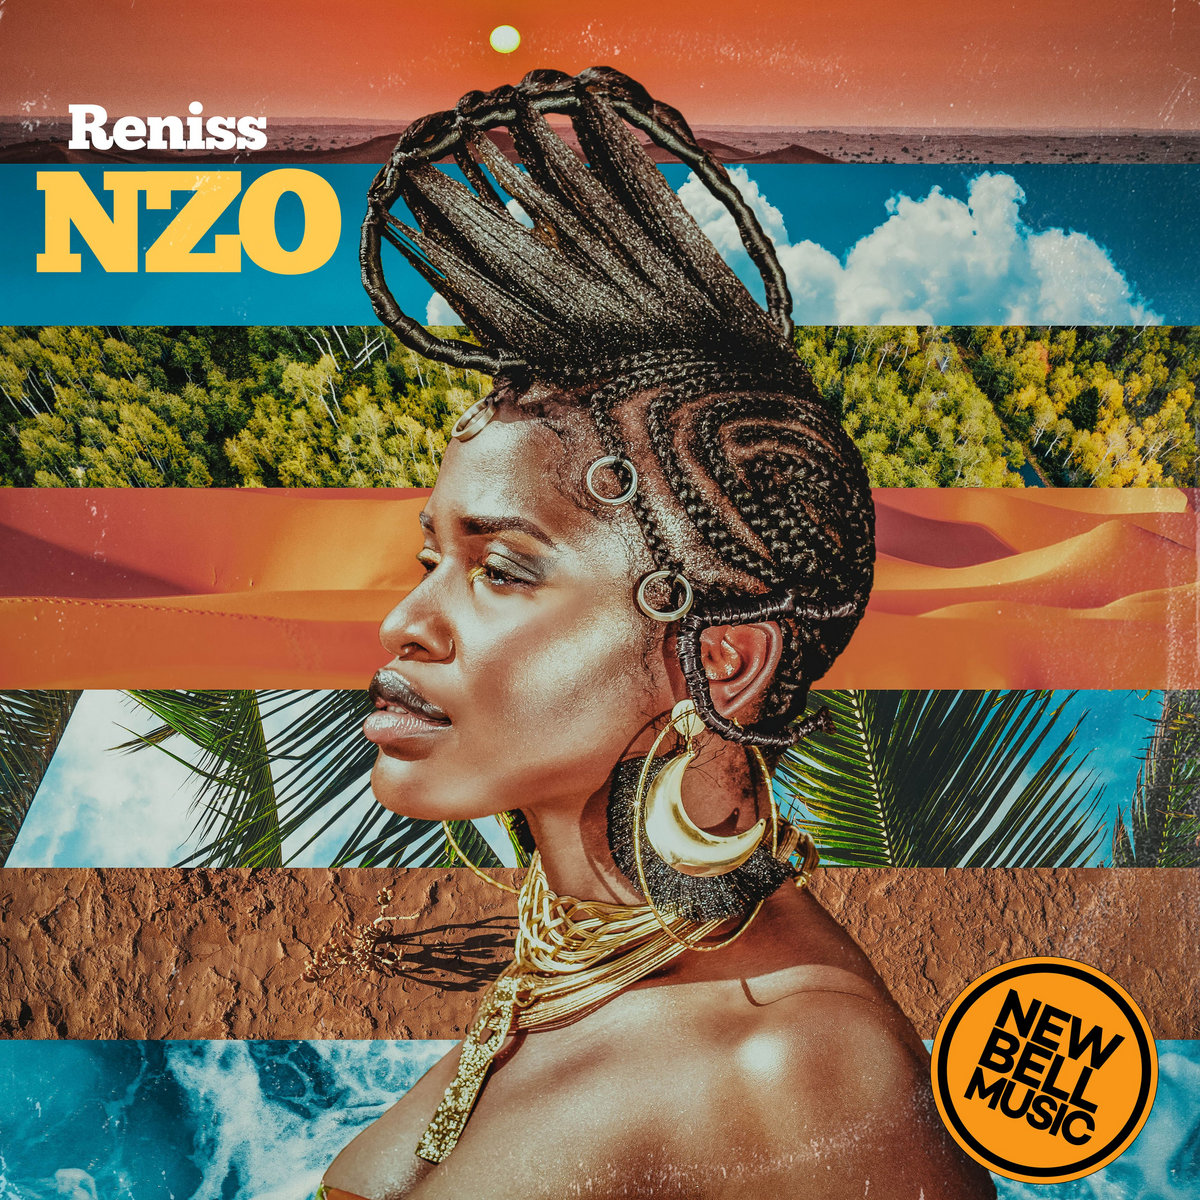 Nzo Cover art by Reniss